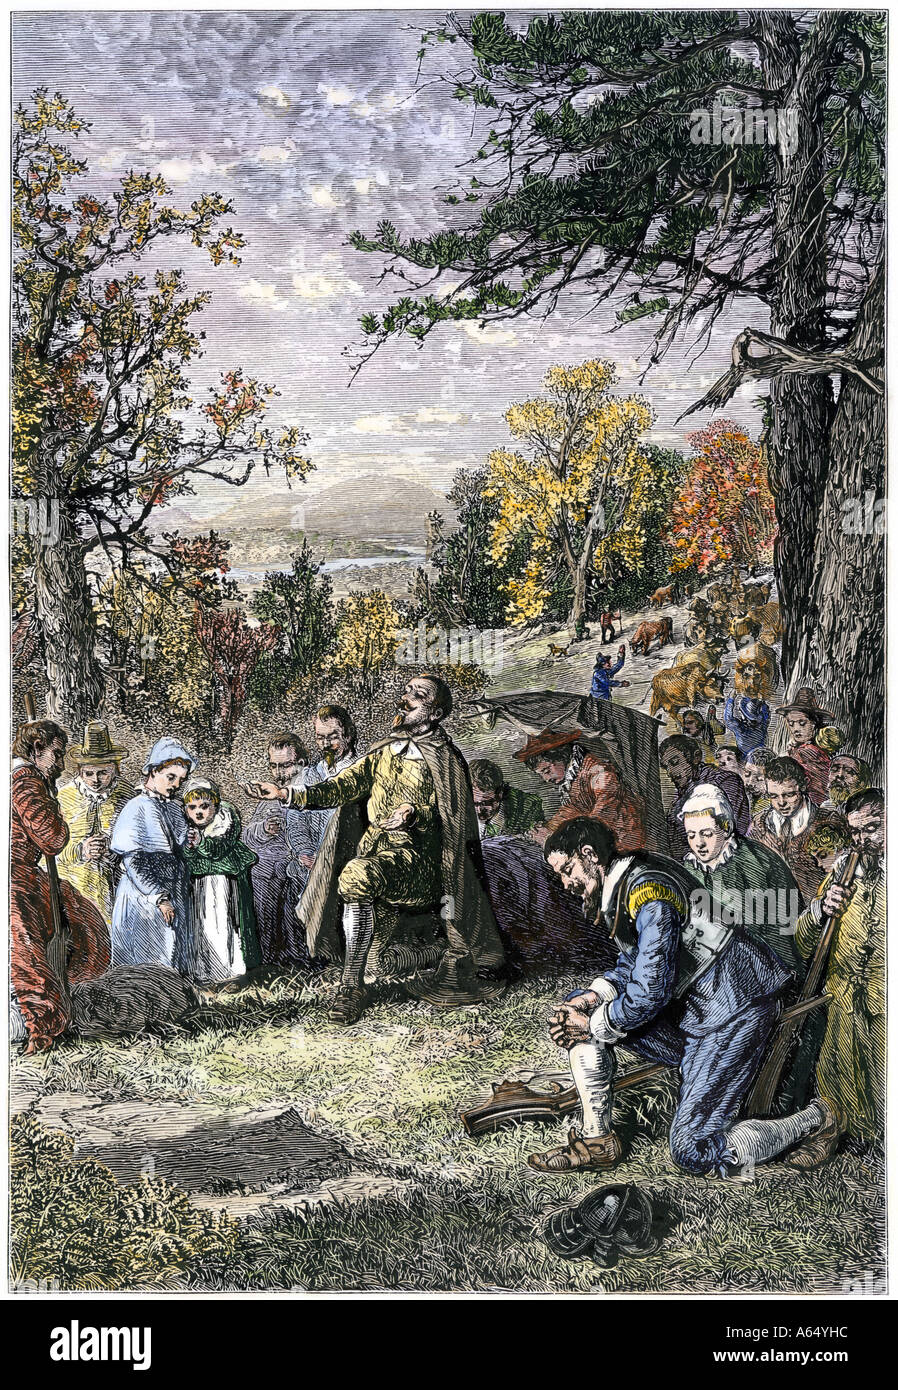 Puritan group led by Joseph Hooker settles Hartford on the Connecticut River 1636. Hand-colored woodcut - Stock Image